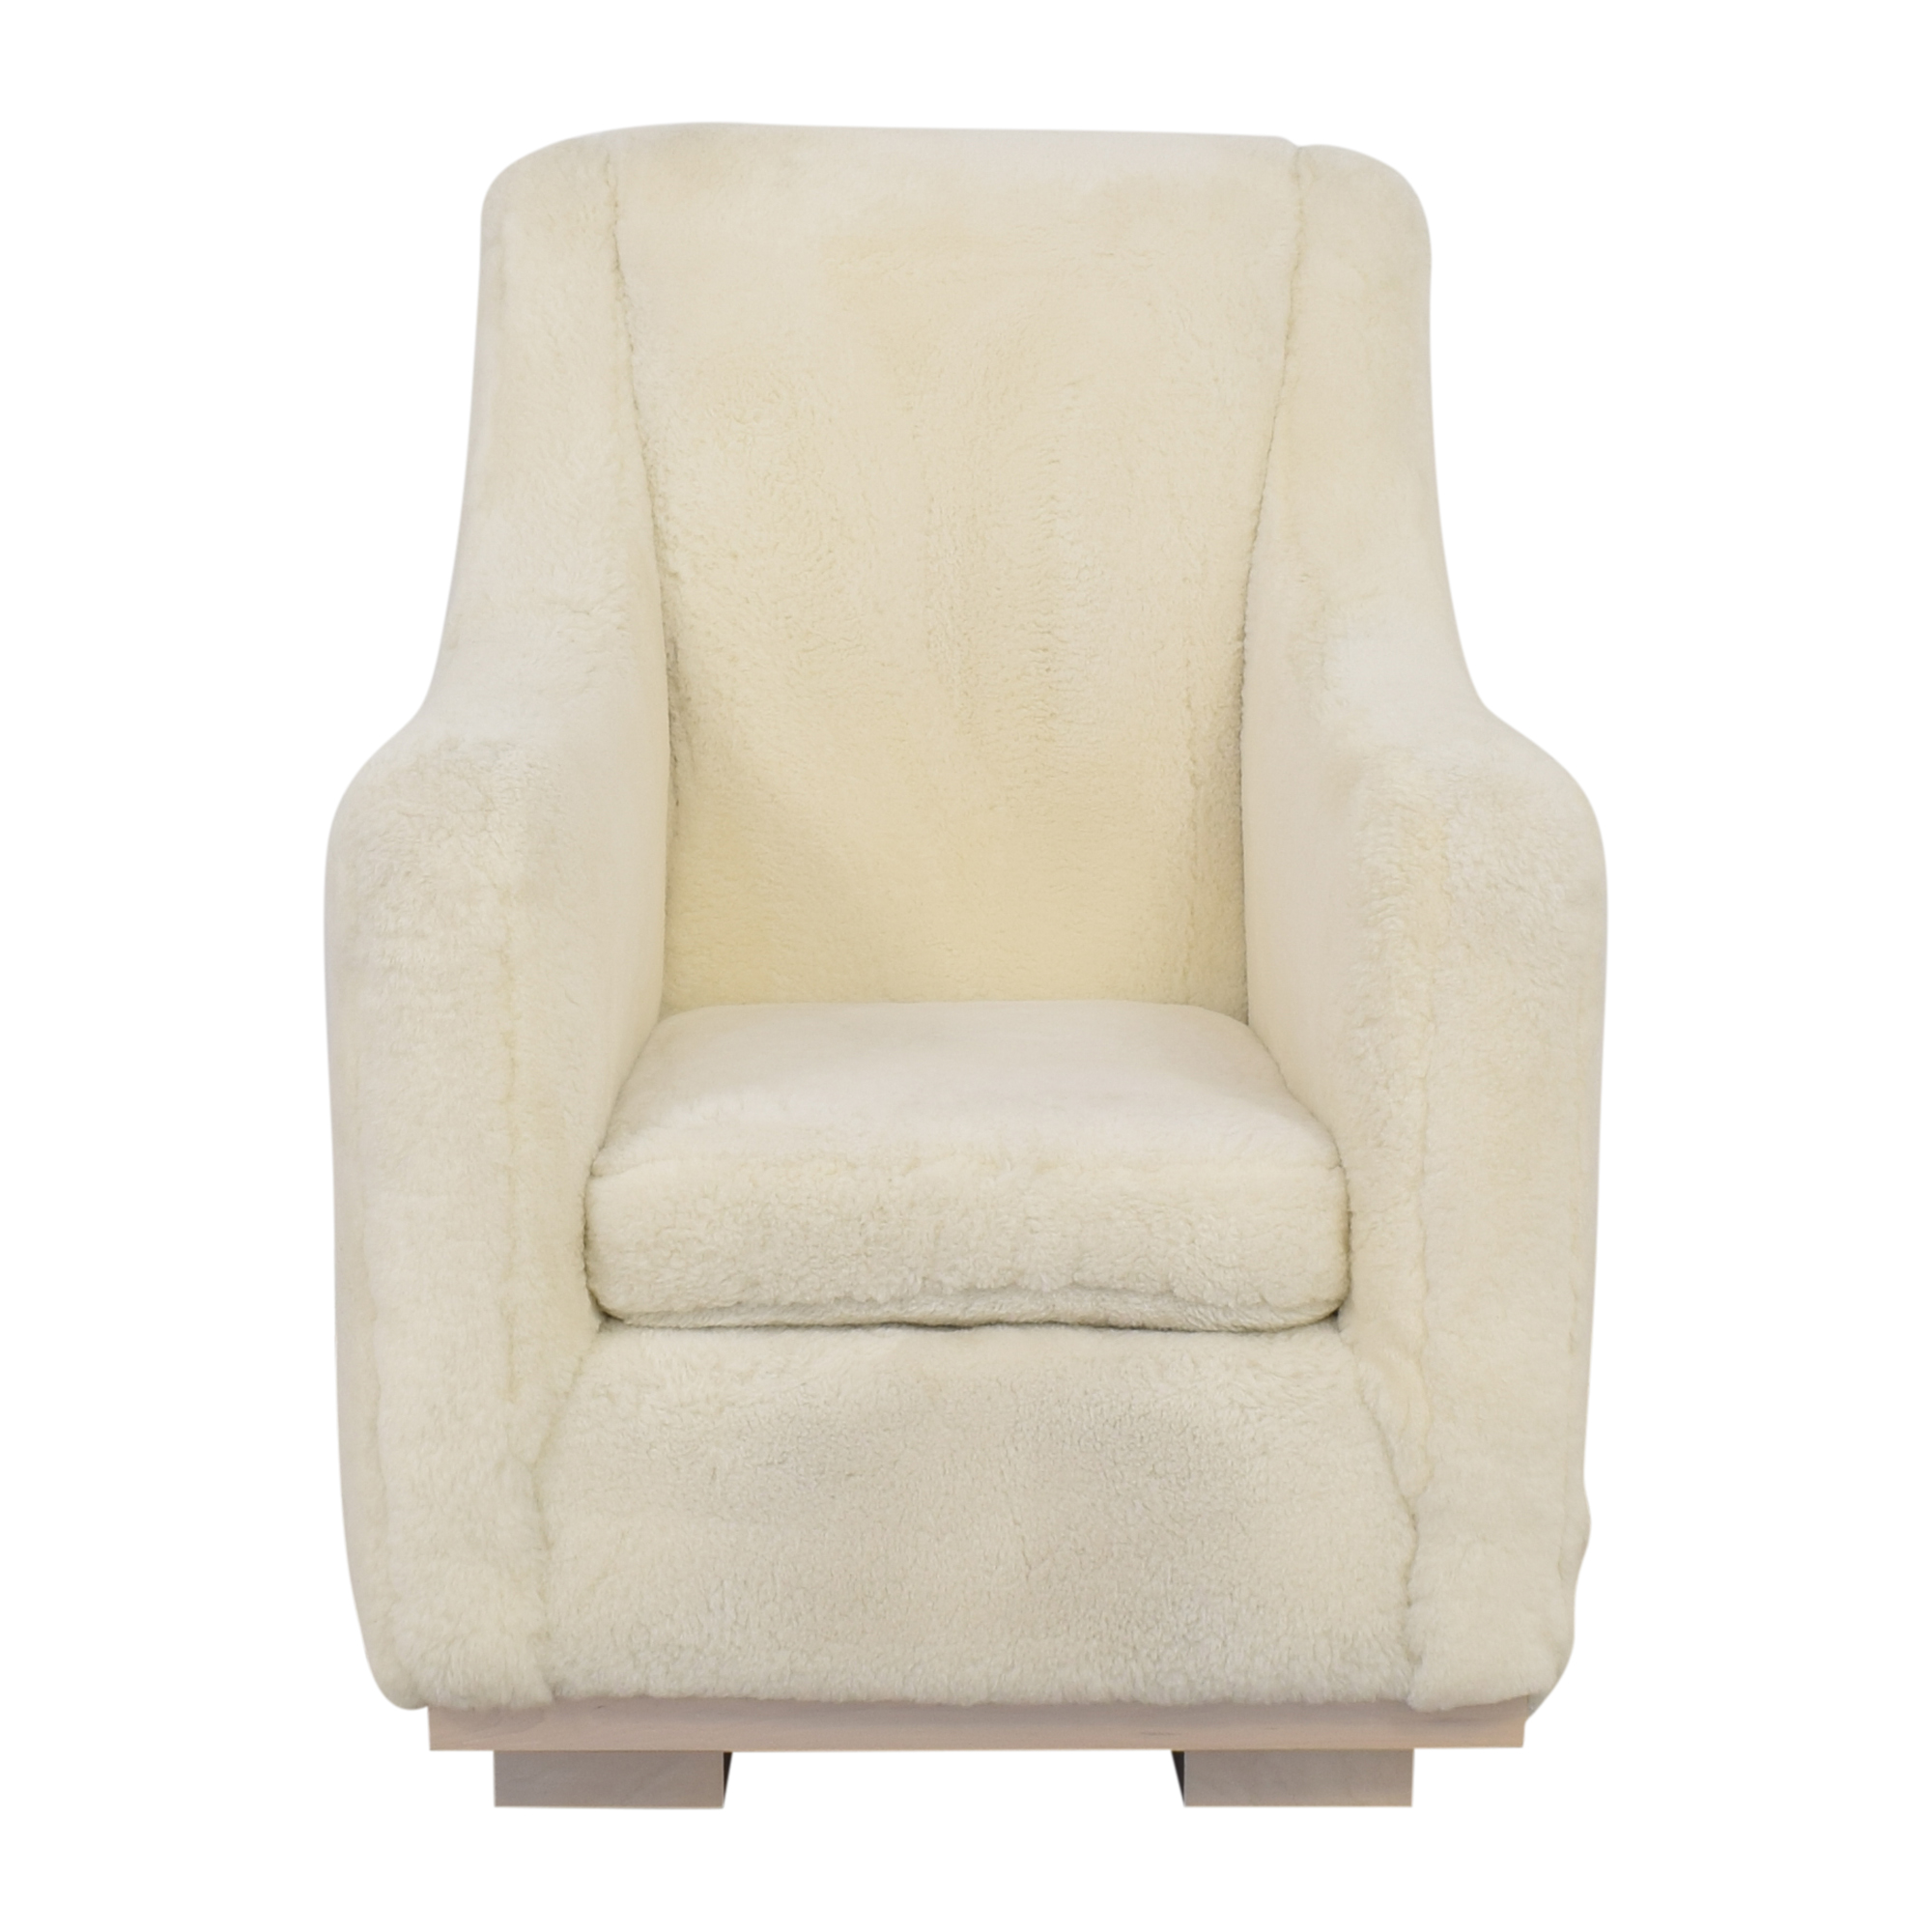 ducduc ducduc Piper Glider Chair on sale